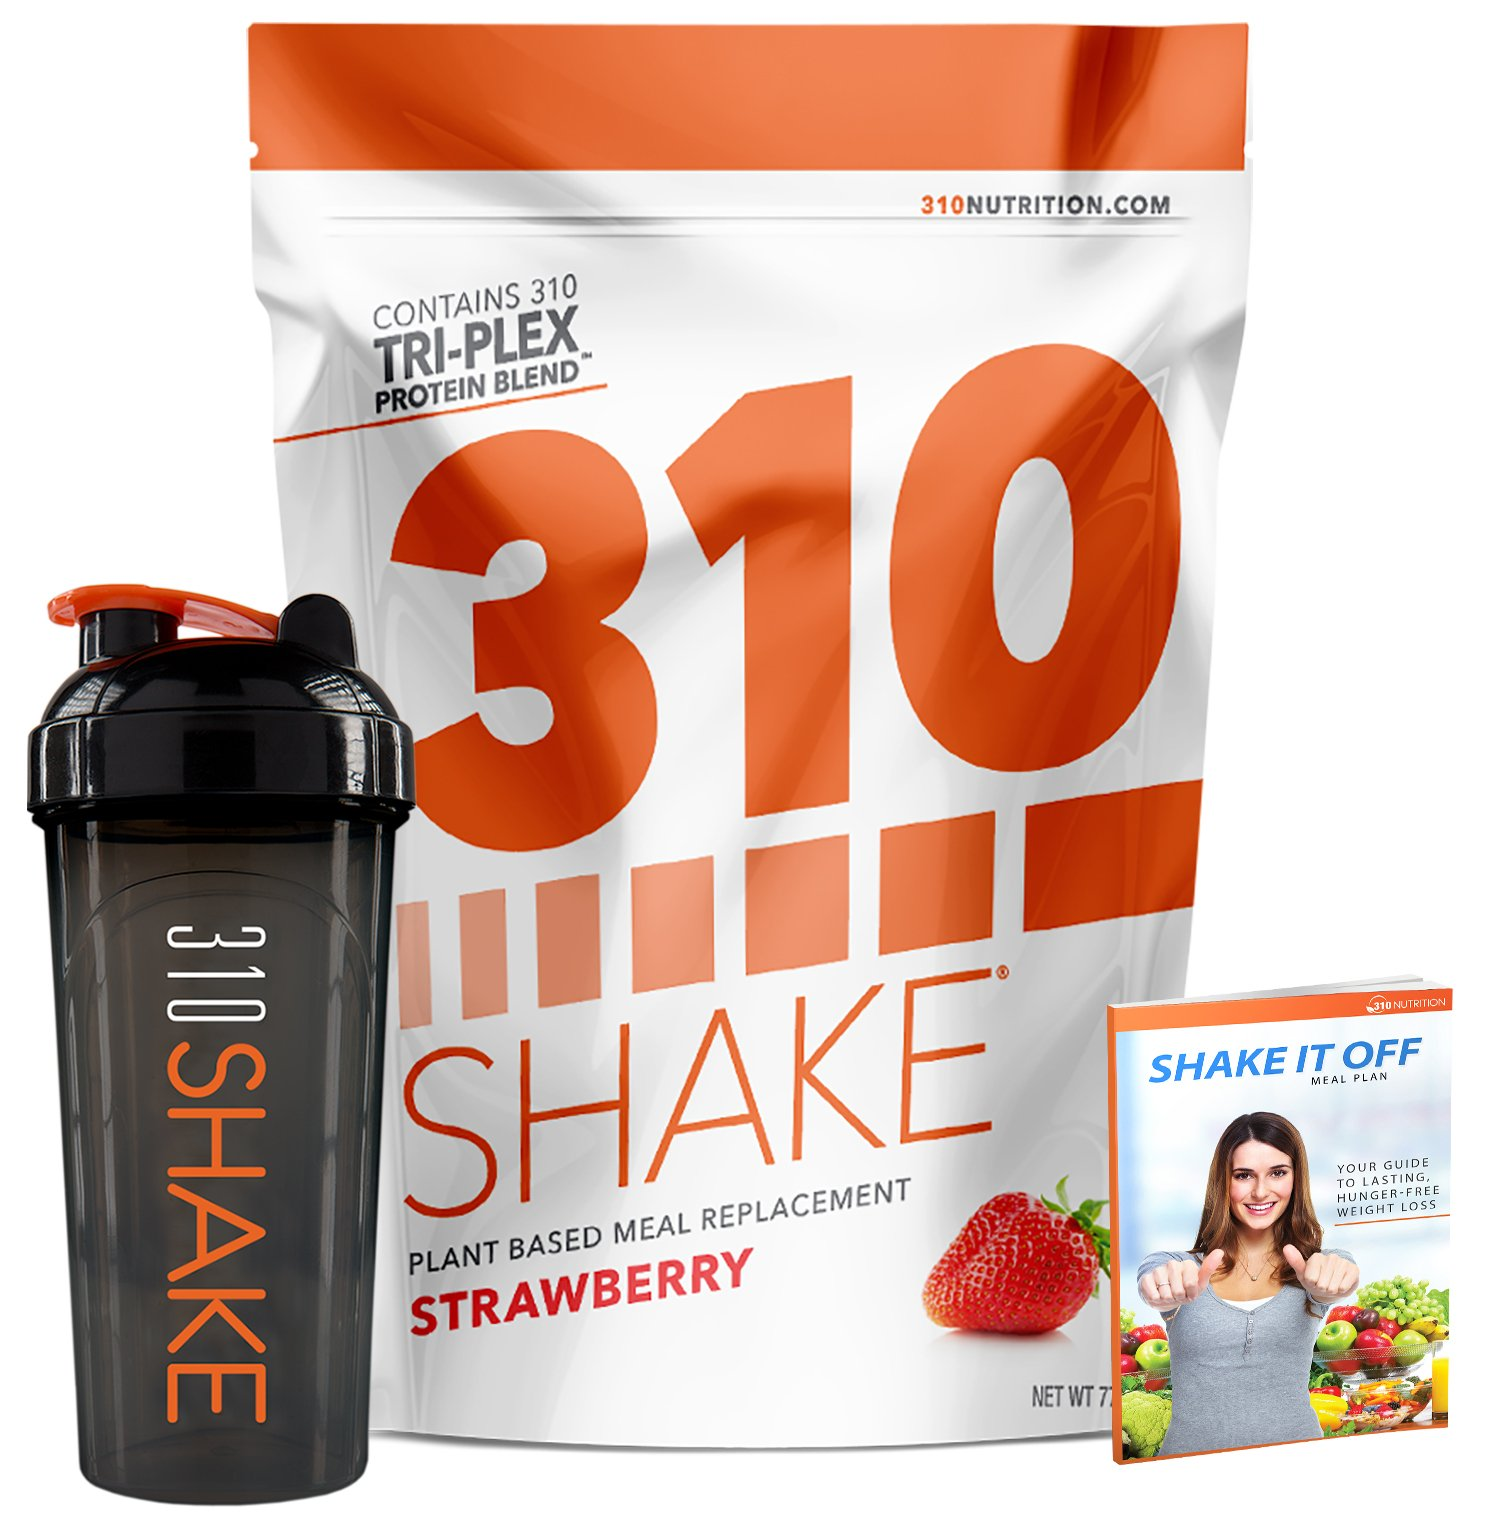 Strawberry Meal Replacement | 310 Shake Protein Powder is Gluten and Dairy free, Soy Protein and Sugar Free | Includes 310 Shaker and Free Recipe eBook (DIGITAL) | 28 Servings